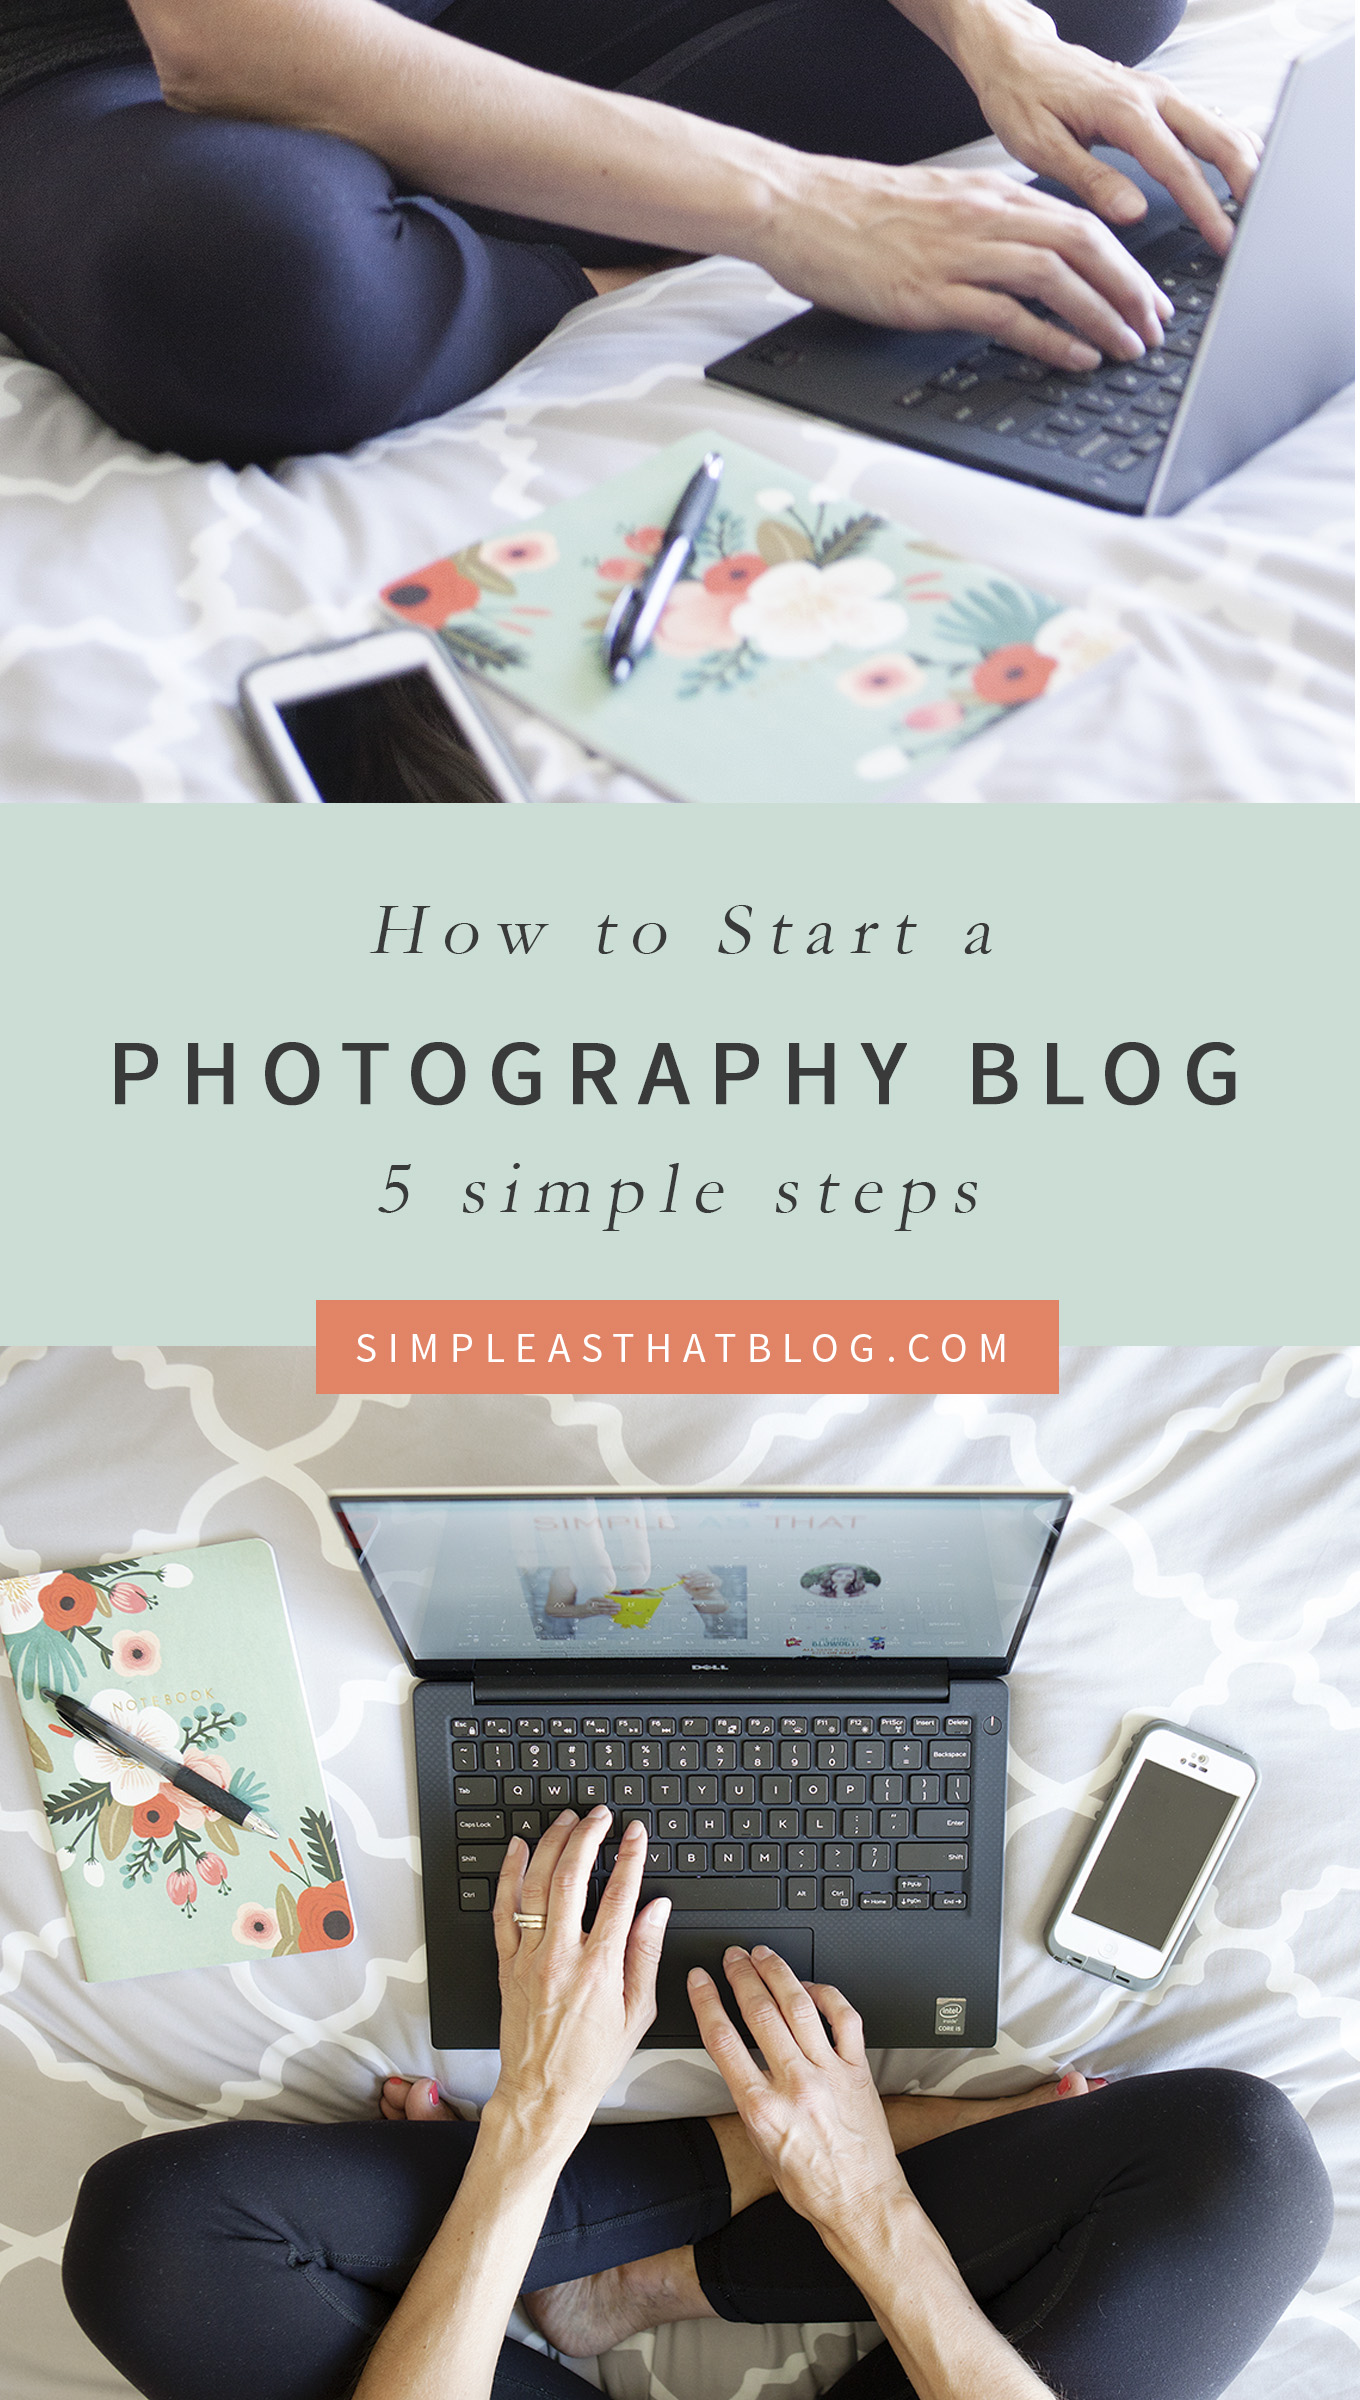 Whether you want to connect with like-minded women or to launch a professional photography business—5 simple steps to starting a photography blog you'll be proud of!